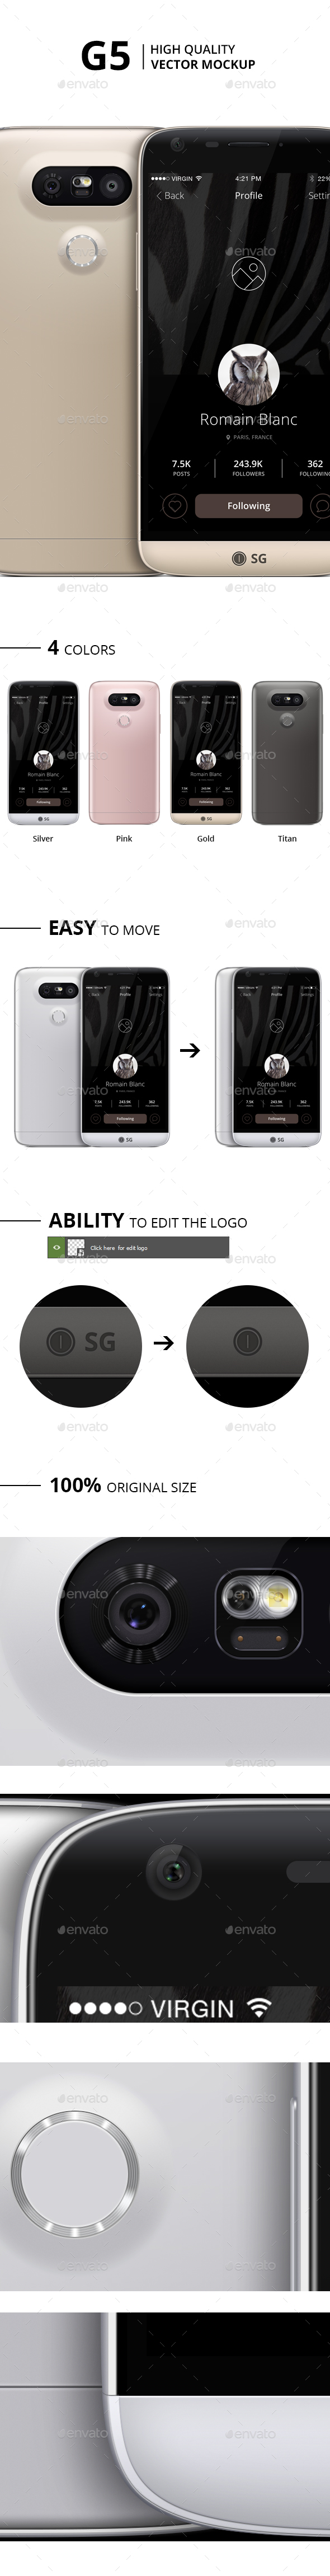 Device Mock-Ups 4 (Displays)